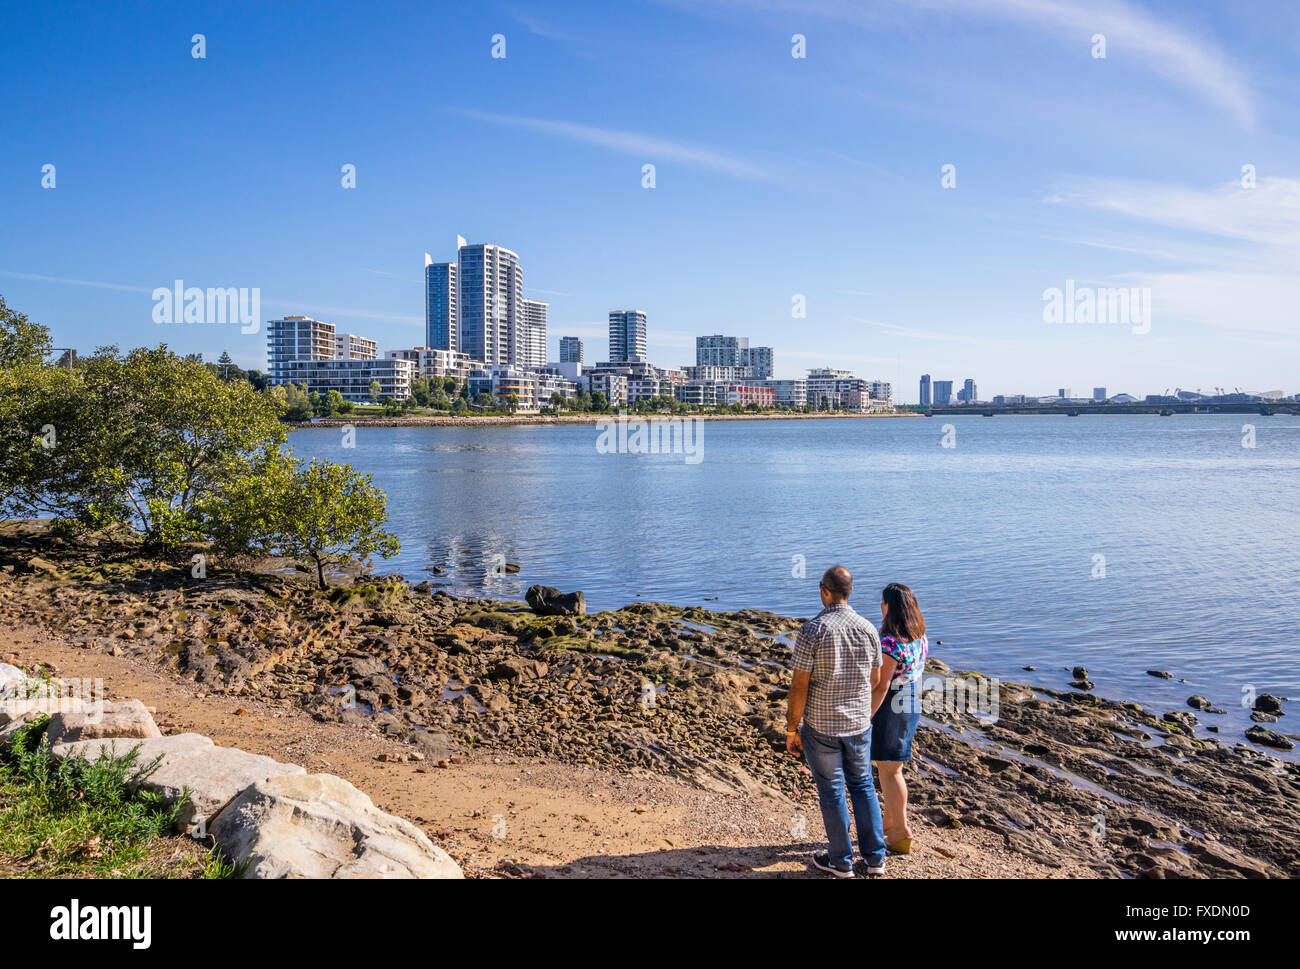 Australia, New South Wales, Parramatta River, view of residential apartment highrise at Rhodes, an Inner West suburb - Stock Image